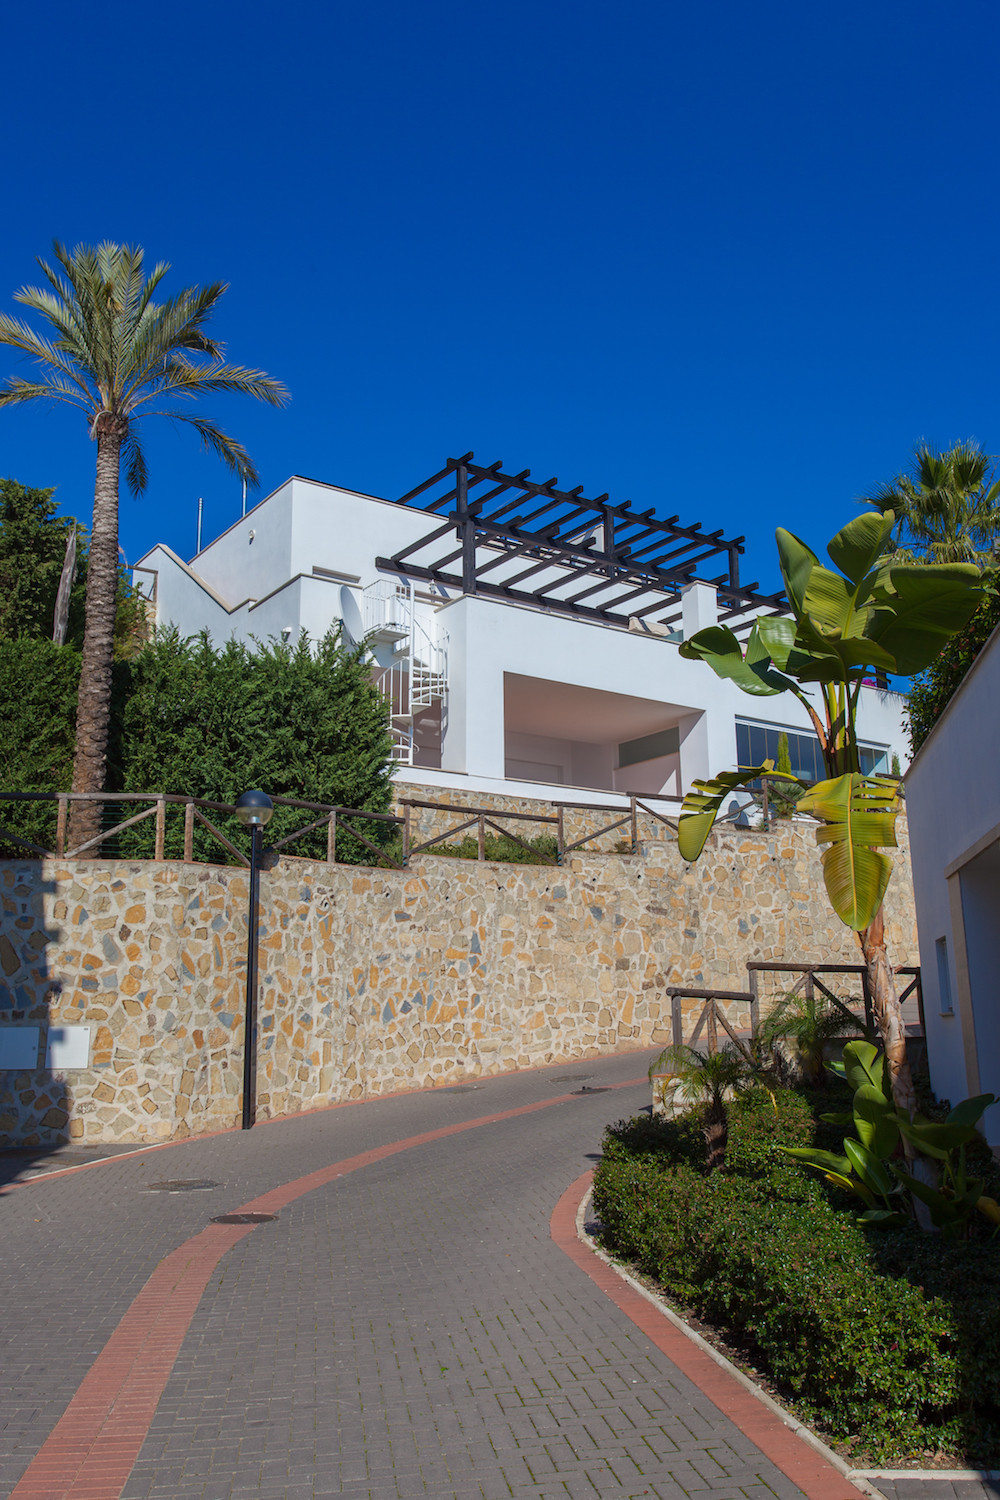 REDUCED AGAIN TO TO 419,000 EUROS!!! AMAZING PRICE FOR THIS URBANISATION  Luxury & Spacious 2 Be, Spain